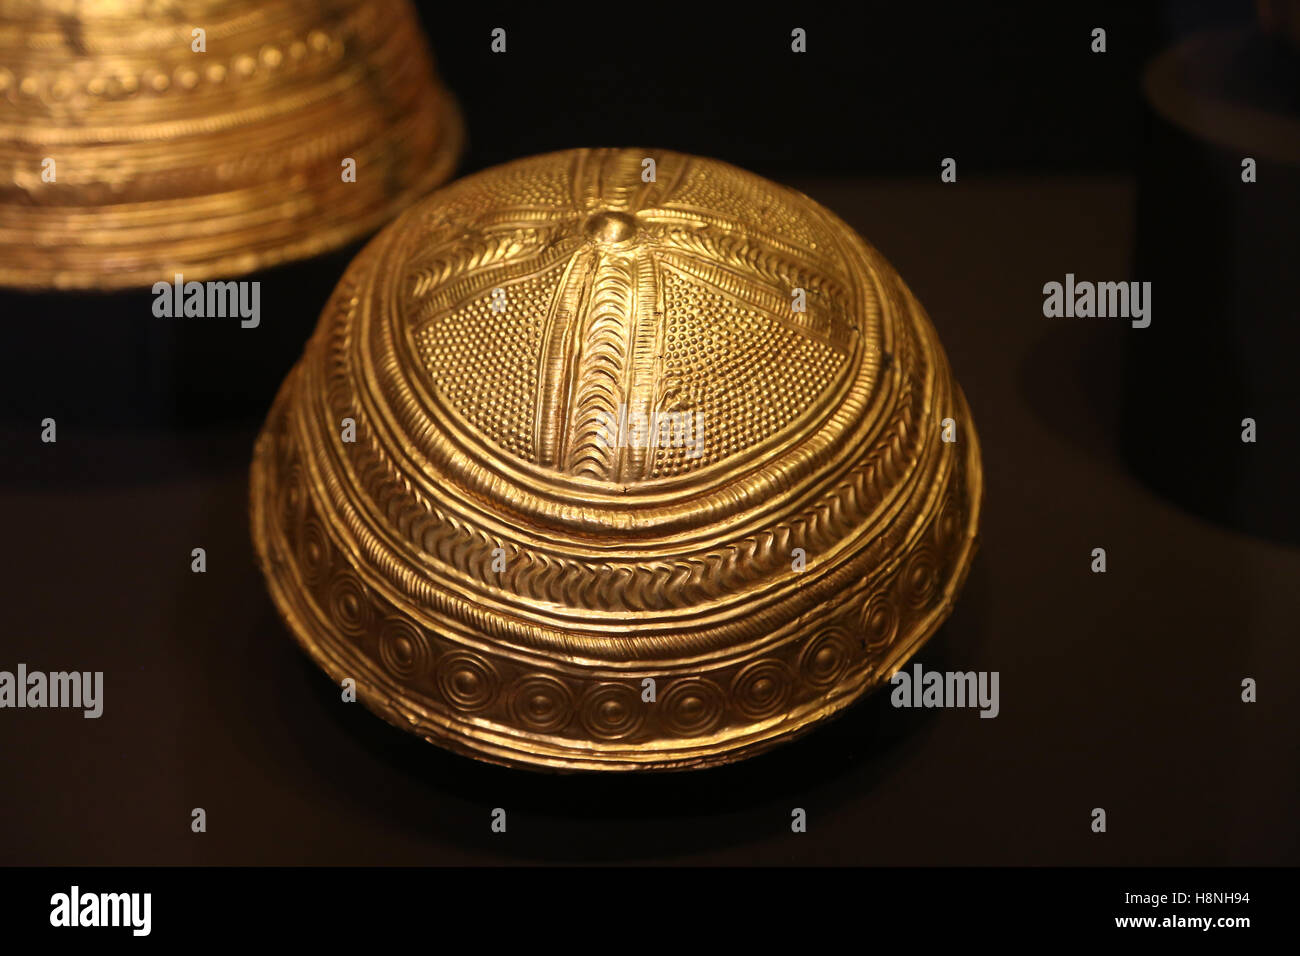 Axtroki bowl. Gold. Late Bronze Age. Axtroki, Guipuzcoa, Spain. 12th-19th centuries BC. Archaeological Museum. Madrid. - Stock Image